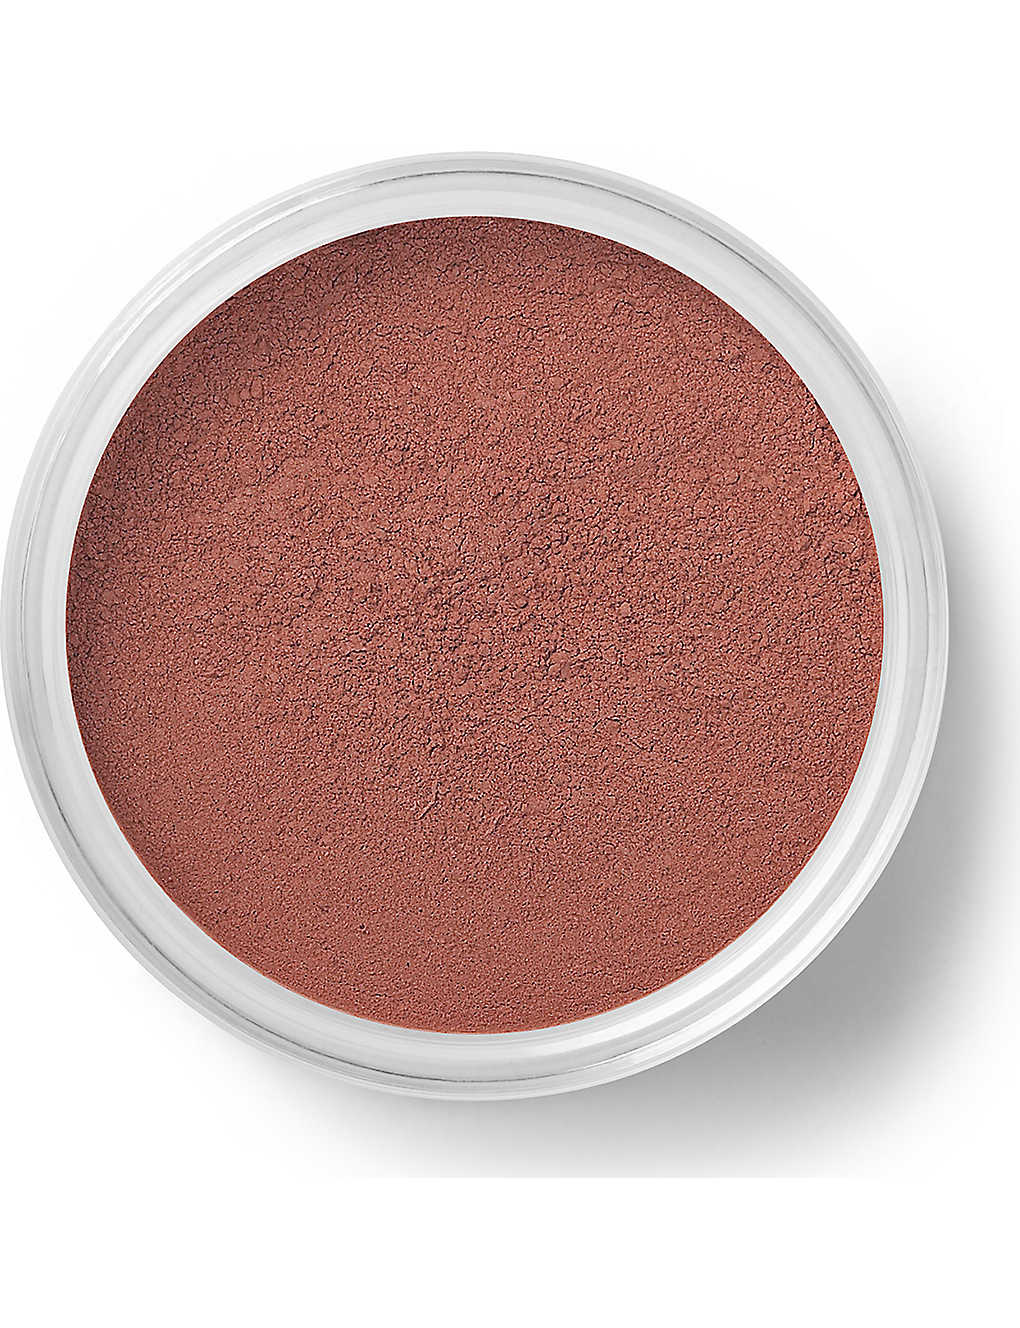 BARE MINERALS: Blush